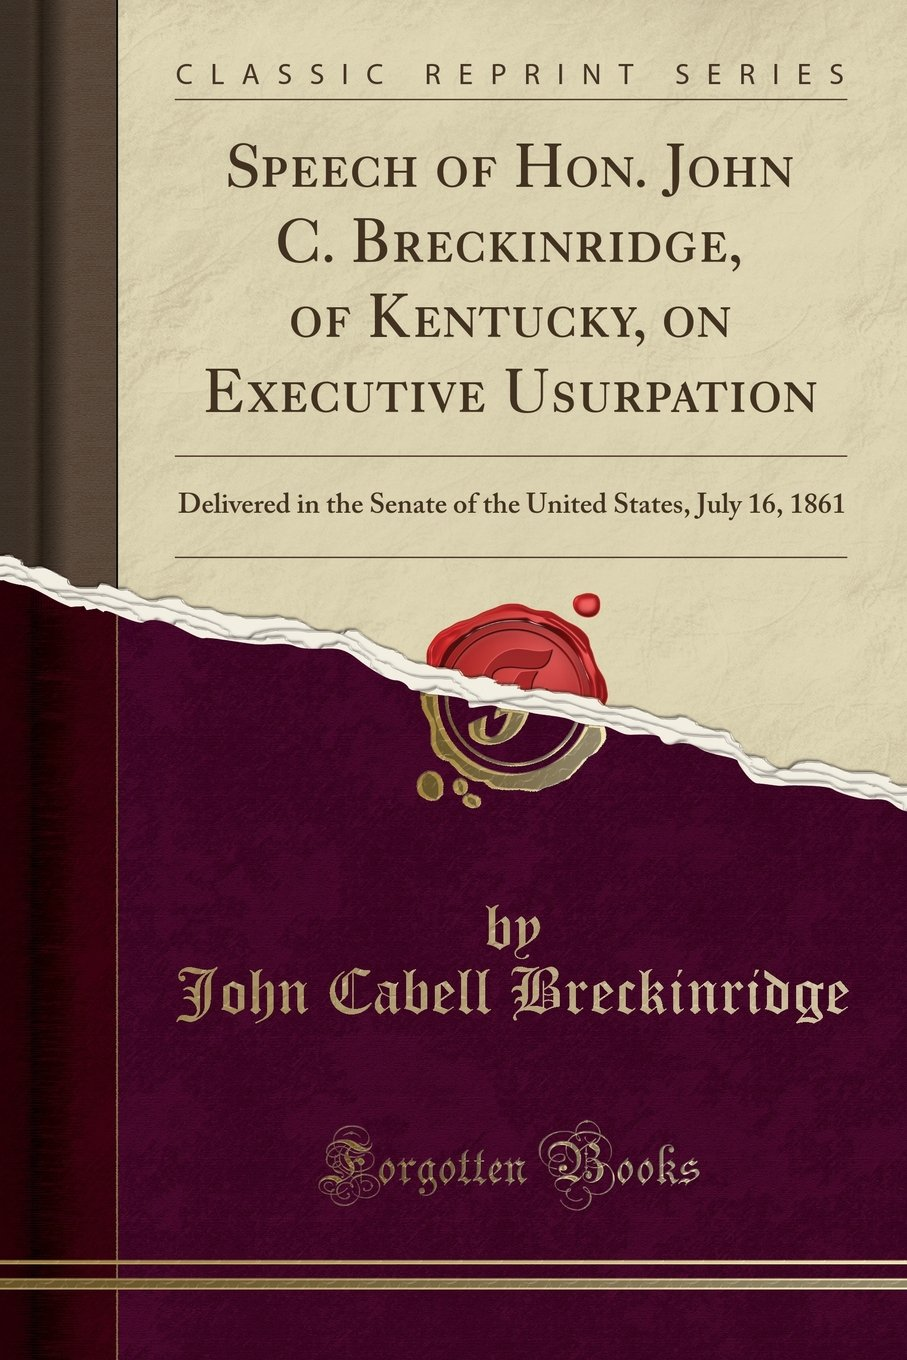 Download Speech of Hon. John C. Breckinridge, of Kentucky, on Executive Usurpation: Delivered in the Senate of the United States, July 16, 1861 (Classic Reprint) PDF